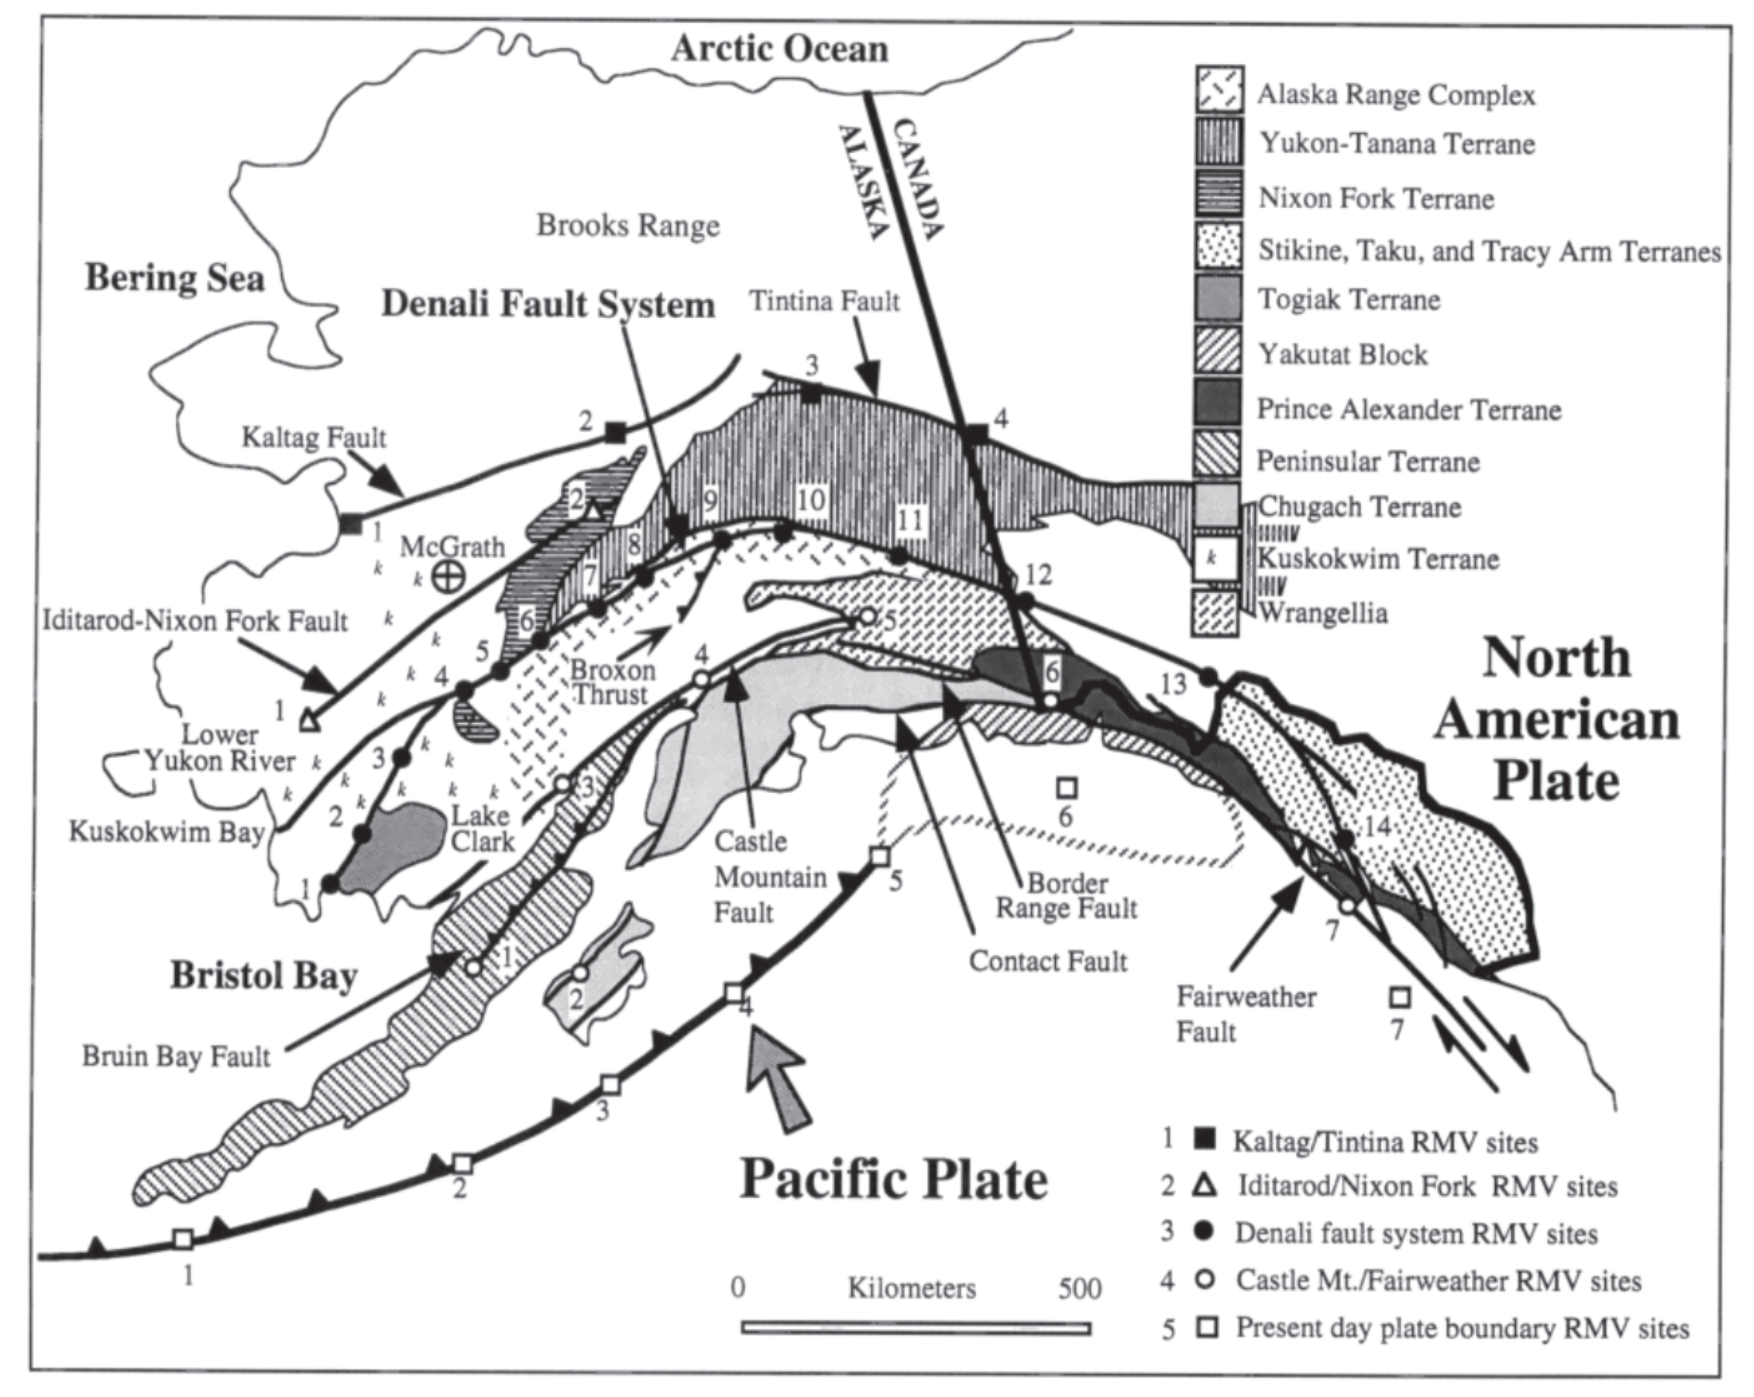 Earthquake Report Denali Fault British Columbia Jay Patton Online - Fault lines in georgia